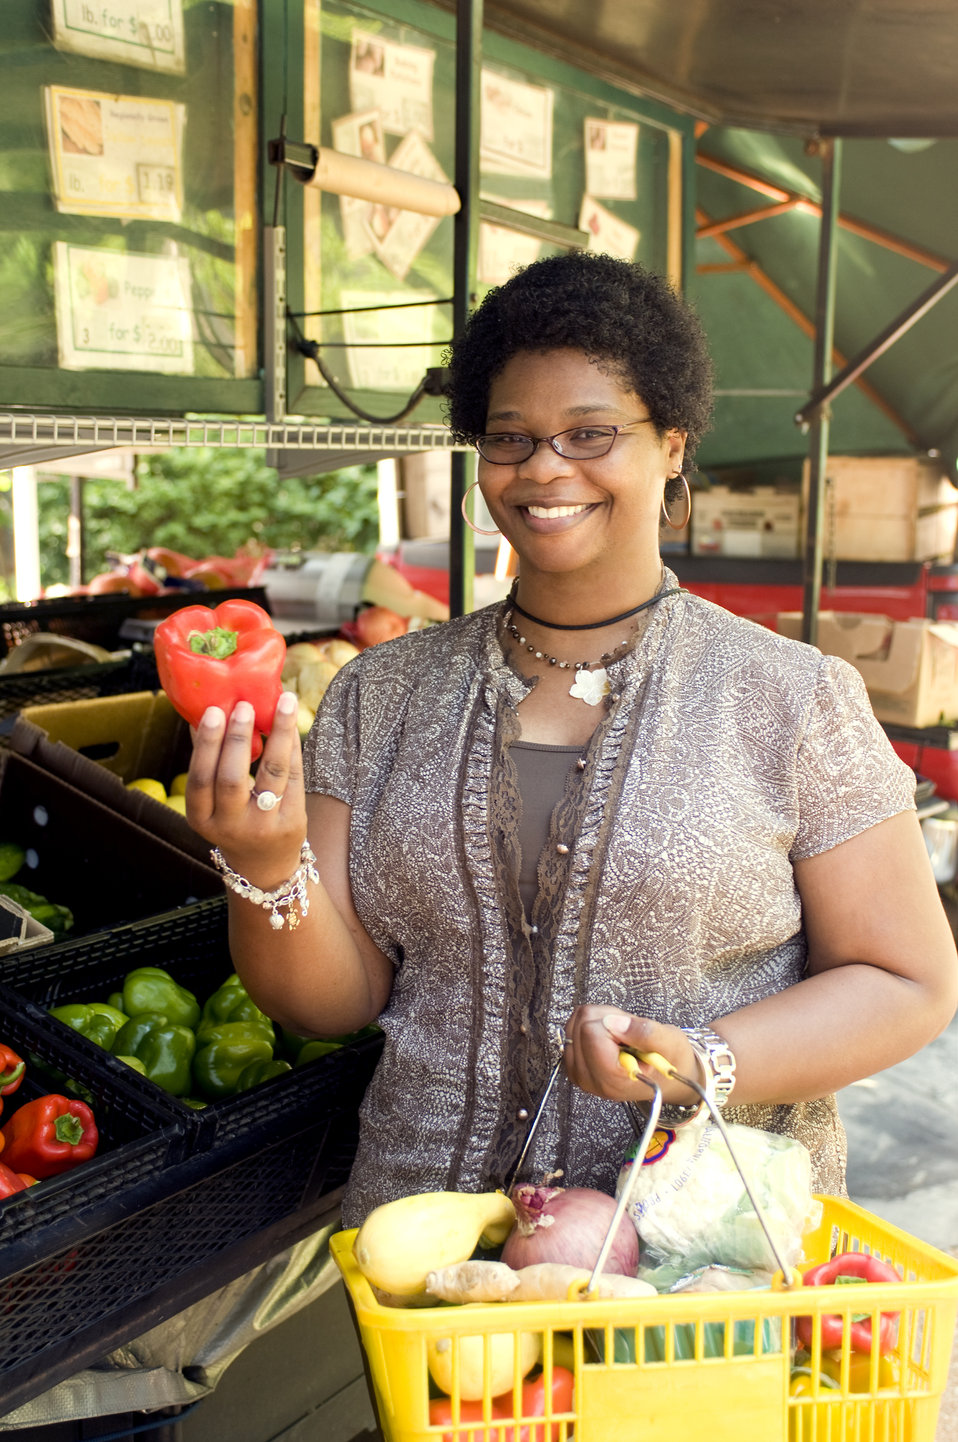 With her shopping basket filled with an array of healthy food choices, this woman had completed her selection process at a mobile produce ma